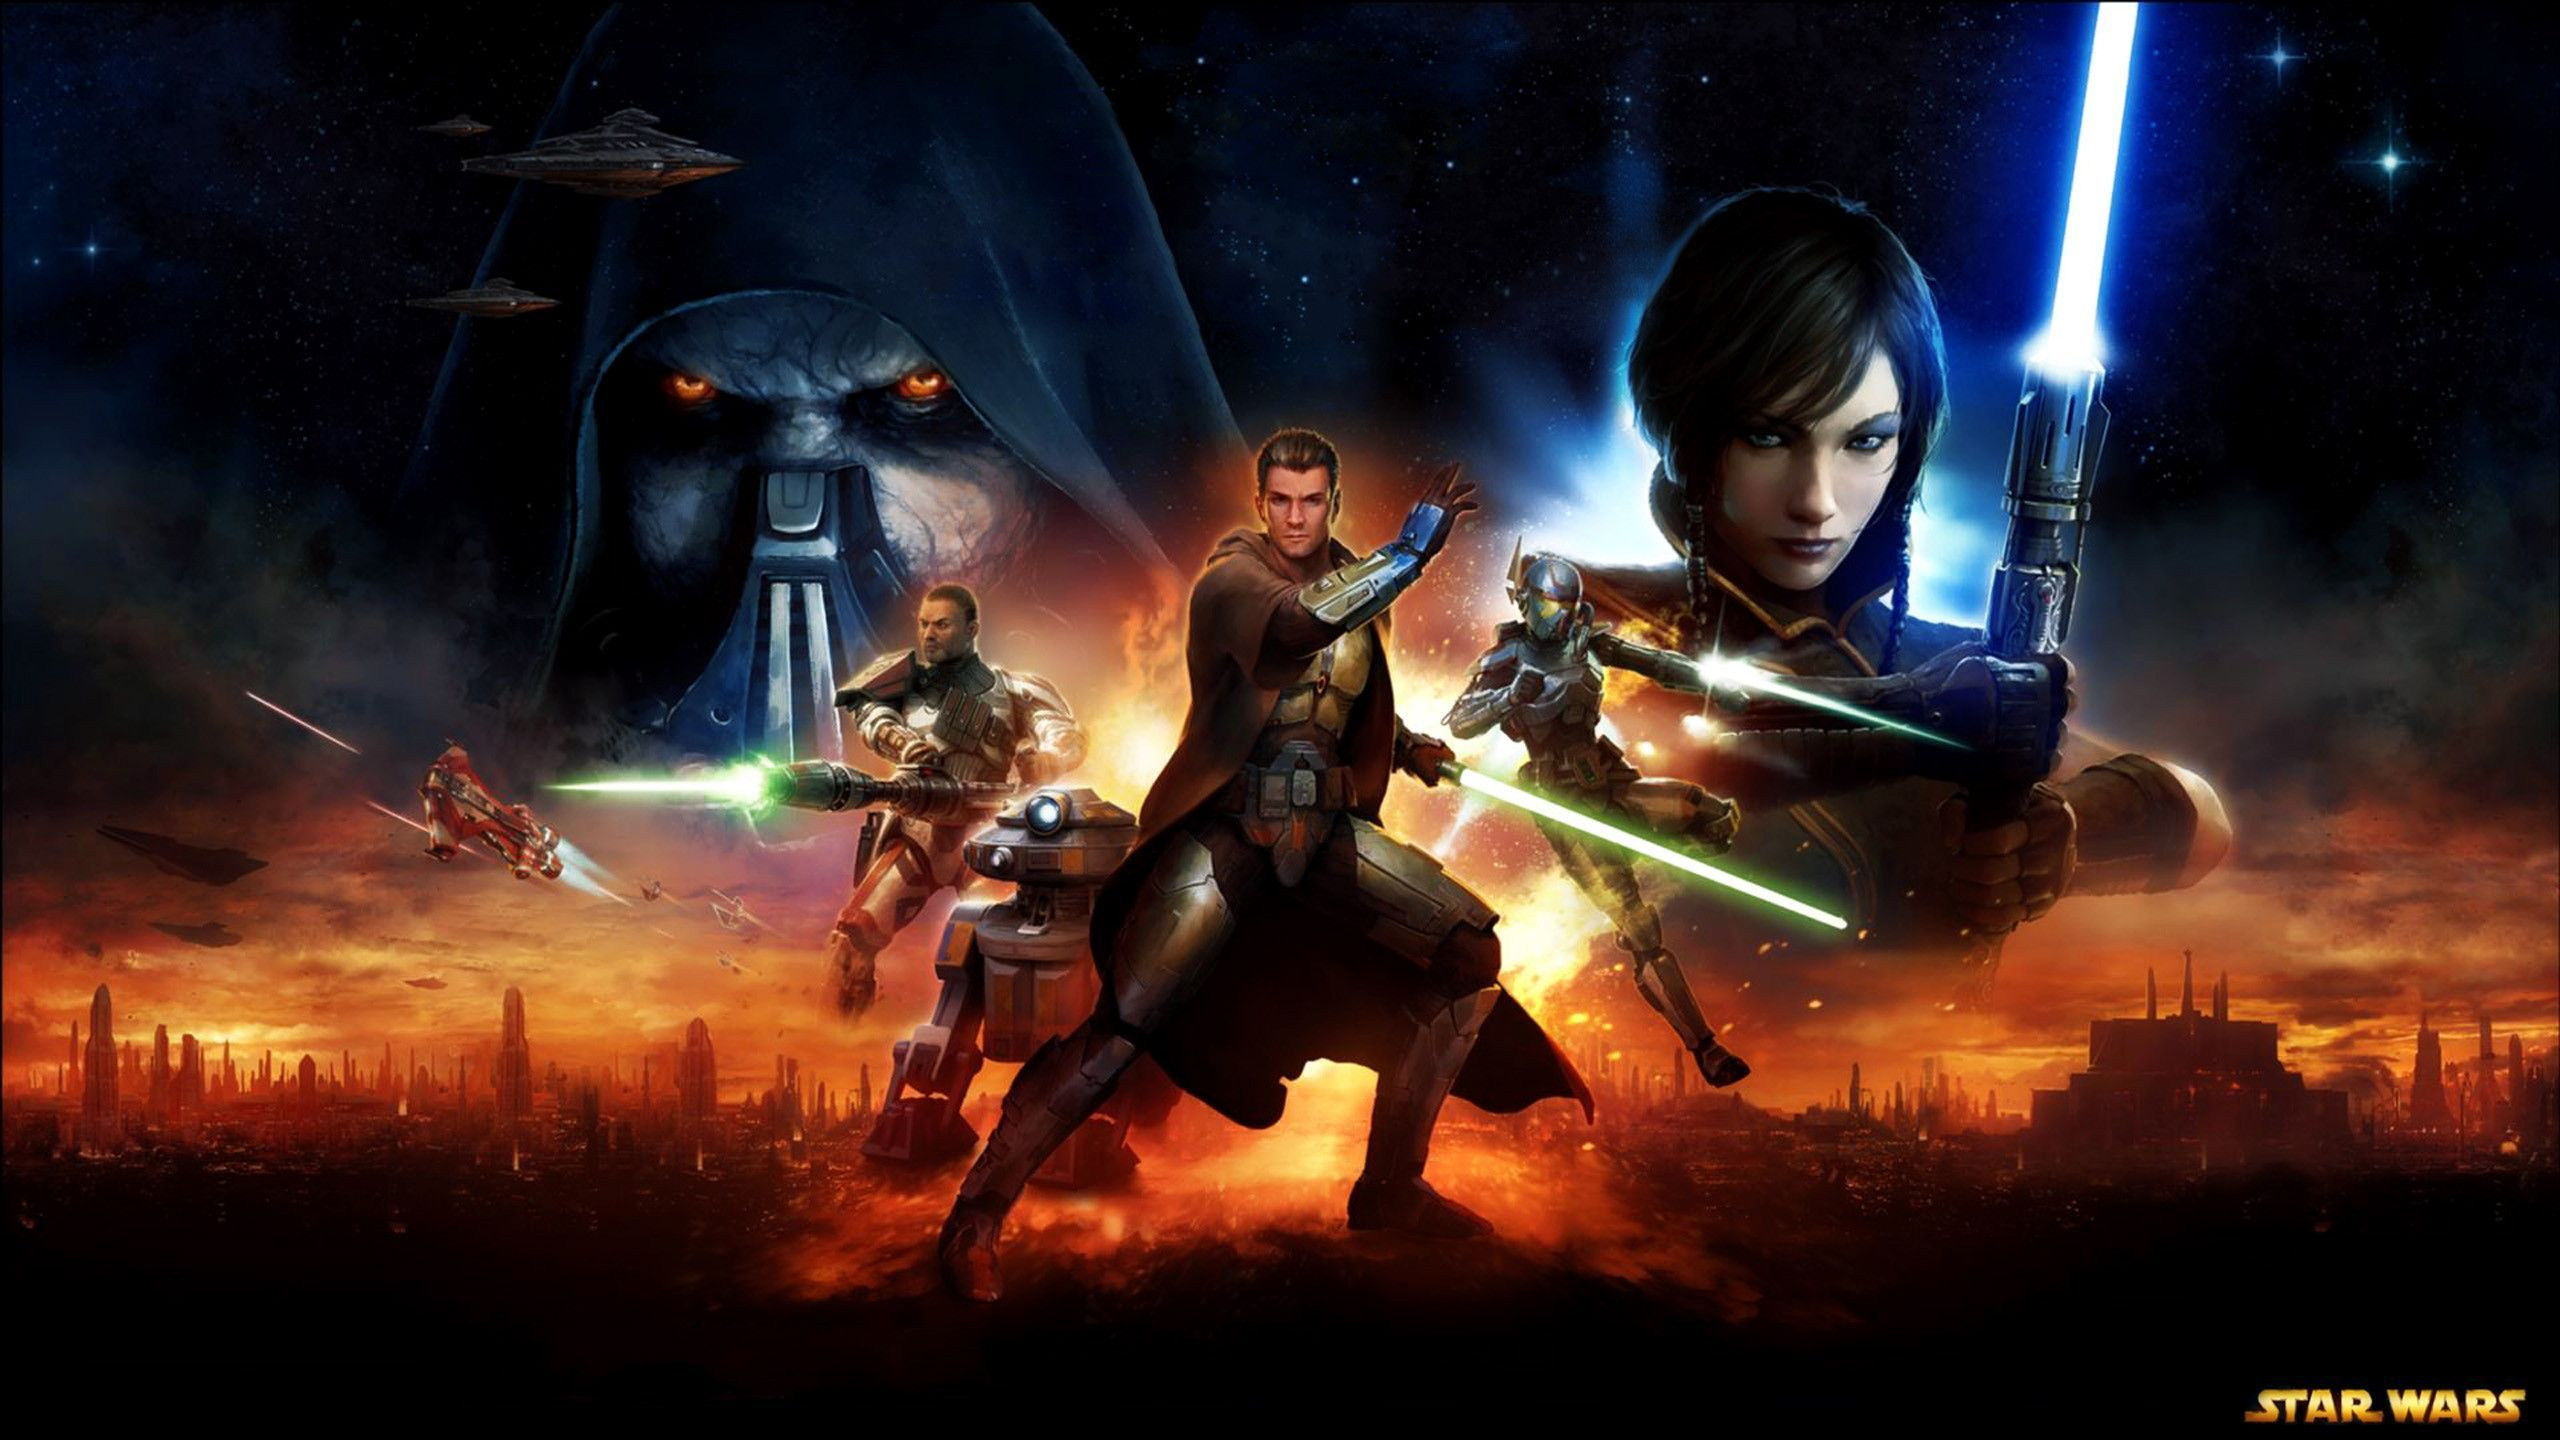 Star Wars The Old Republic Wallpapers 1920x1080 Wallpaper Cave The Old Republic Star Wars The Old Republic Pictures